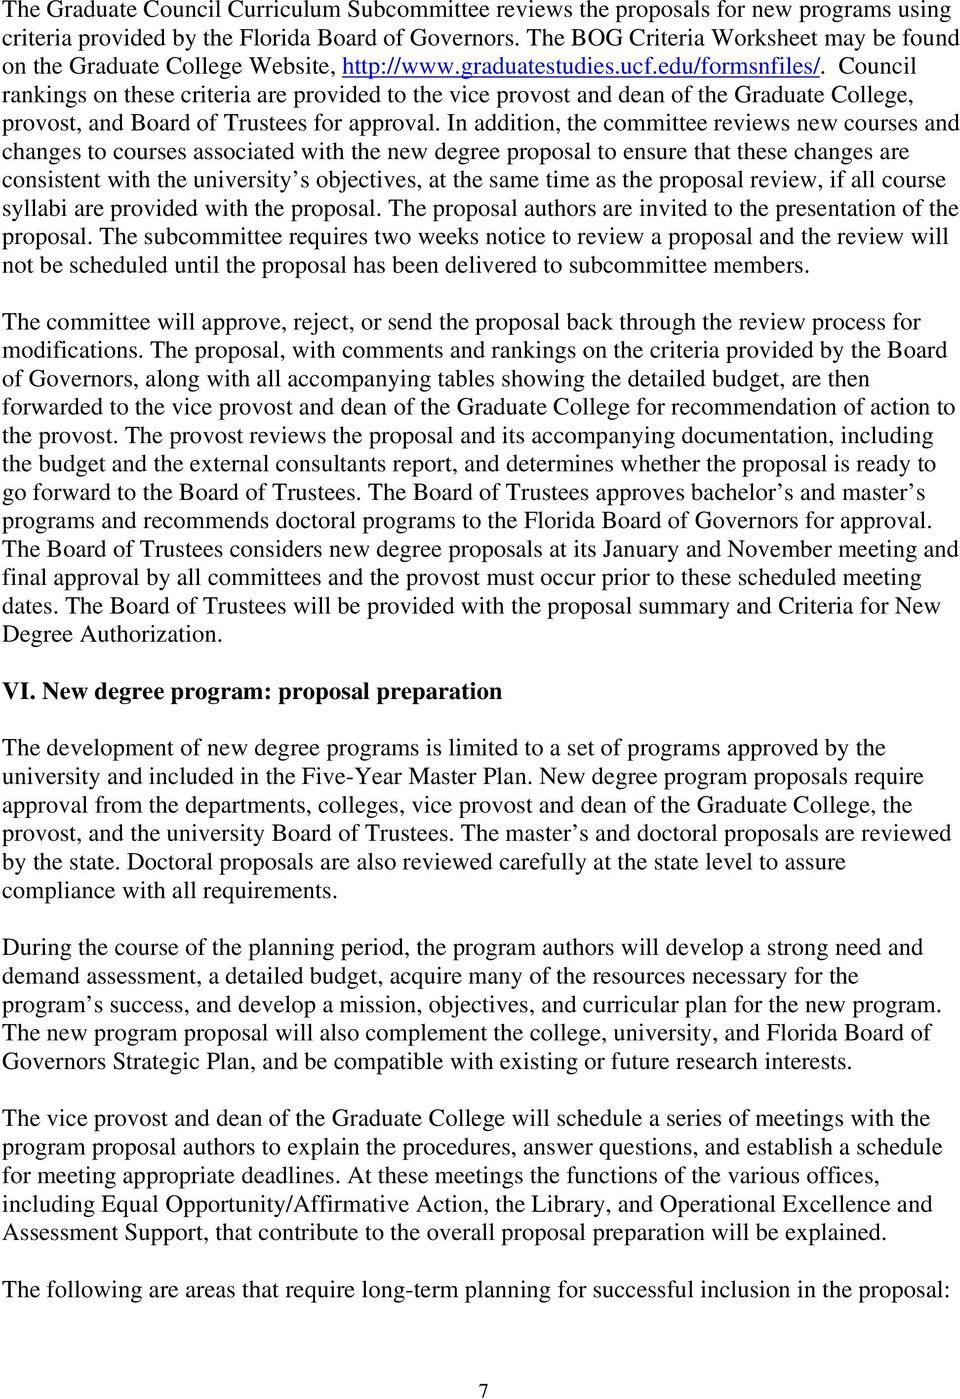 Council rankings on these criteria are provided to the vice provost and dean of the Graduate College, provost, and Board of Trustees for approval.